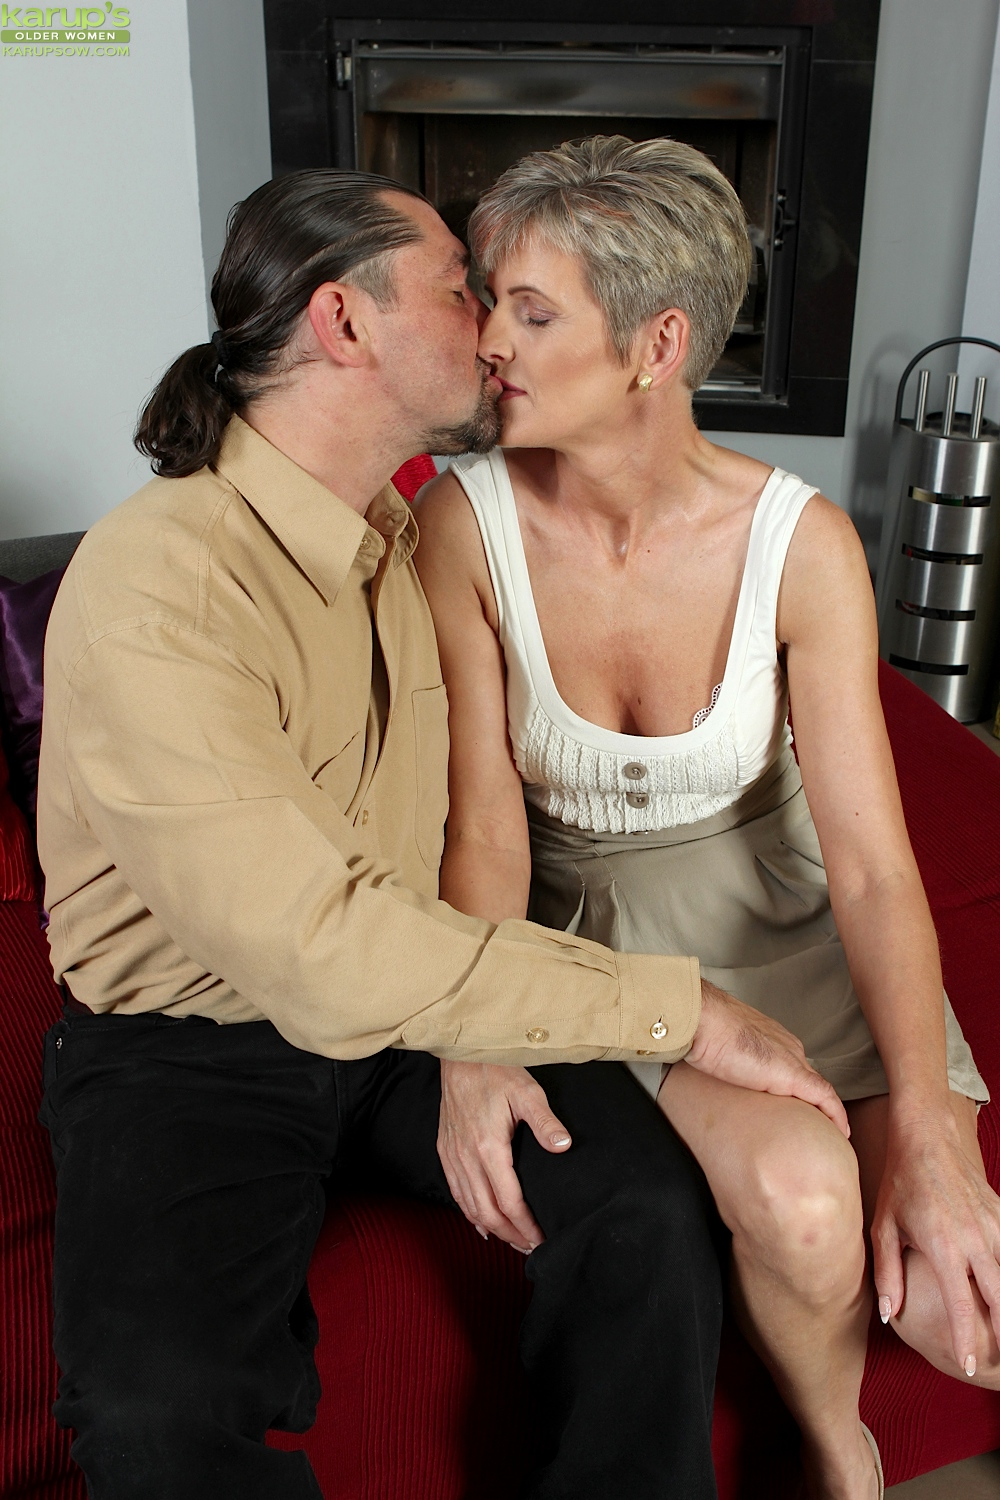 Skinny boy gets a handjob from fat cougar doctor anna 5